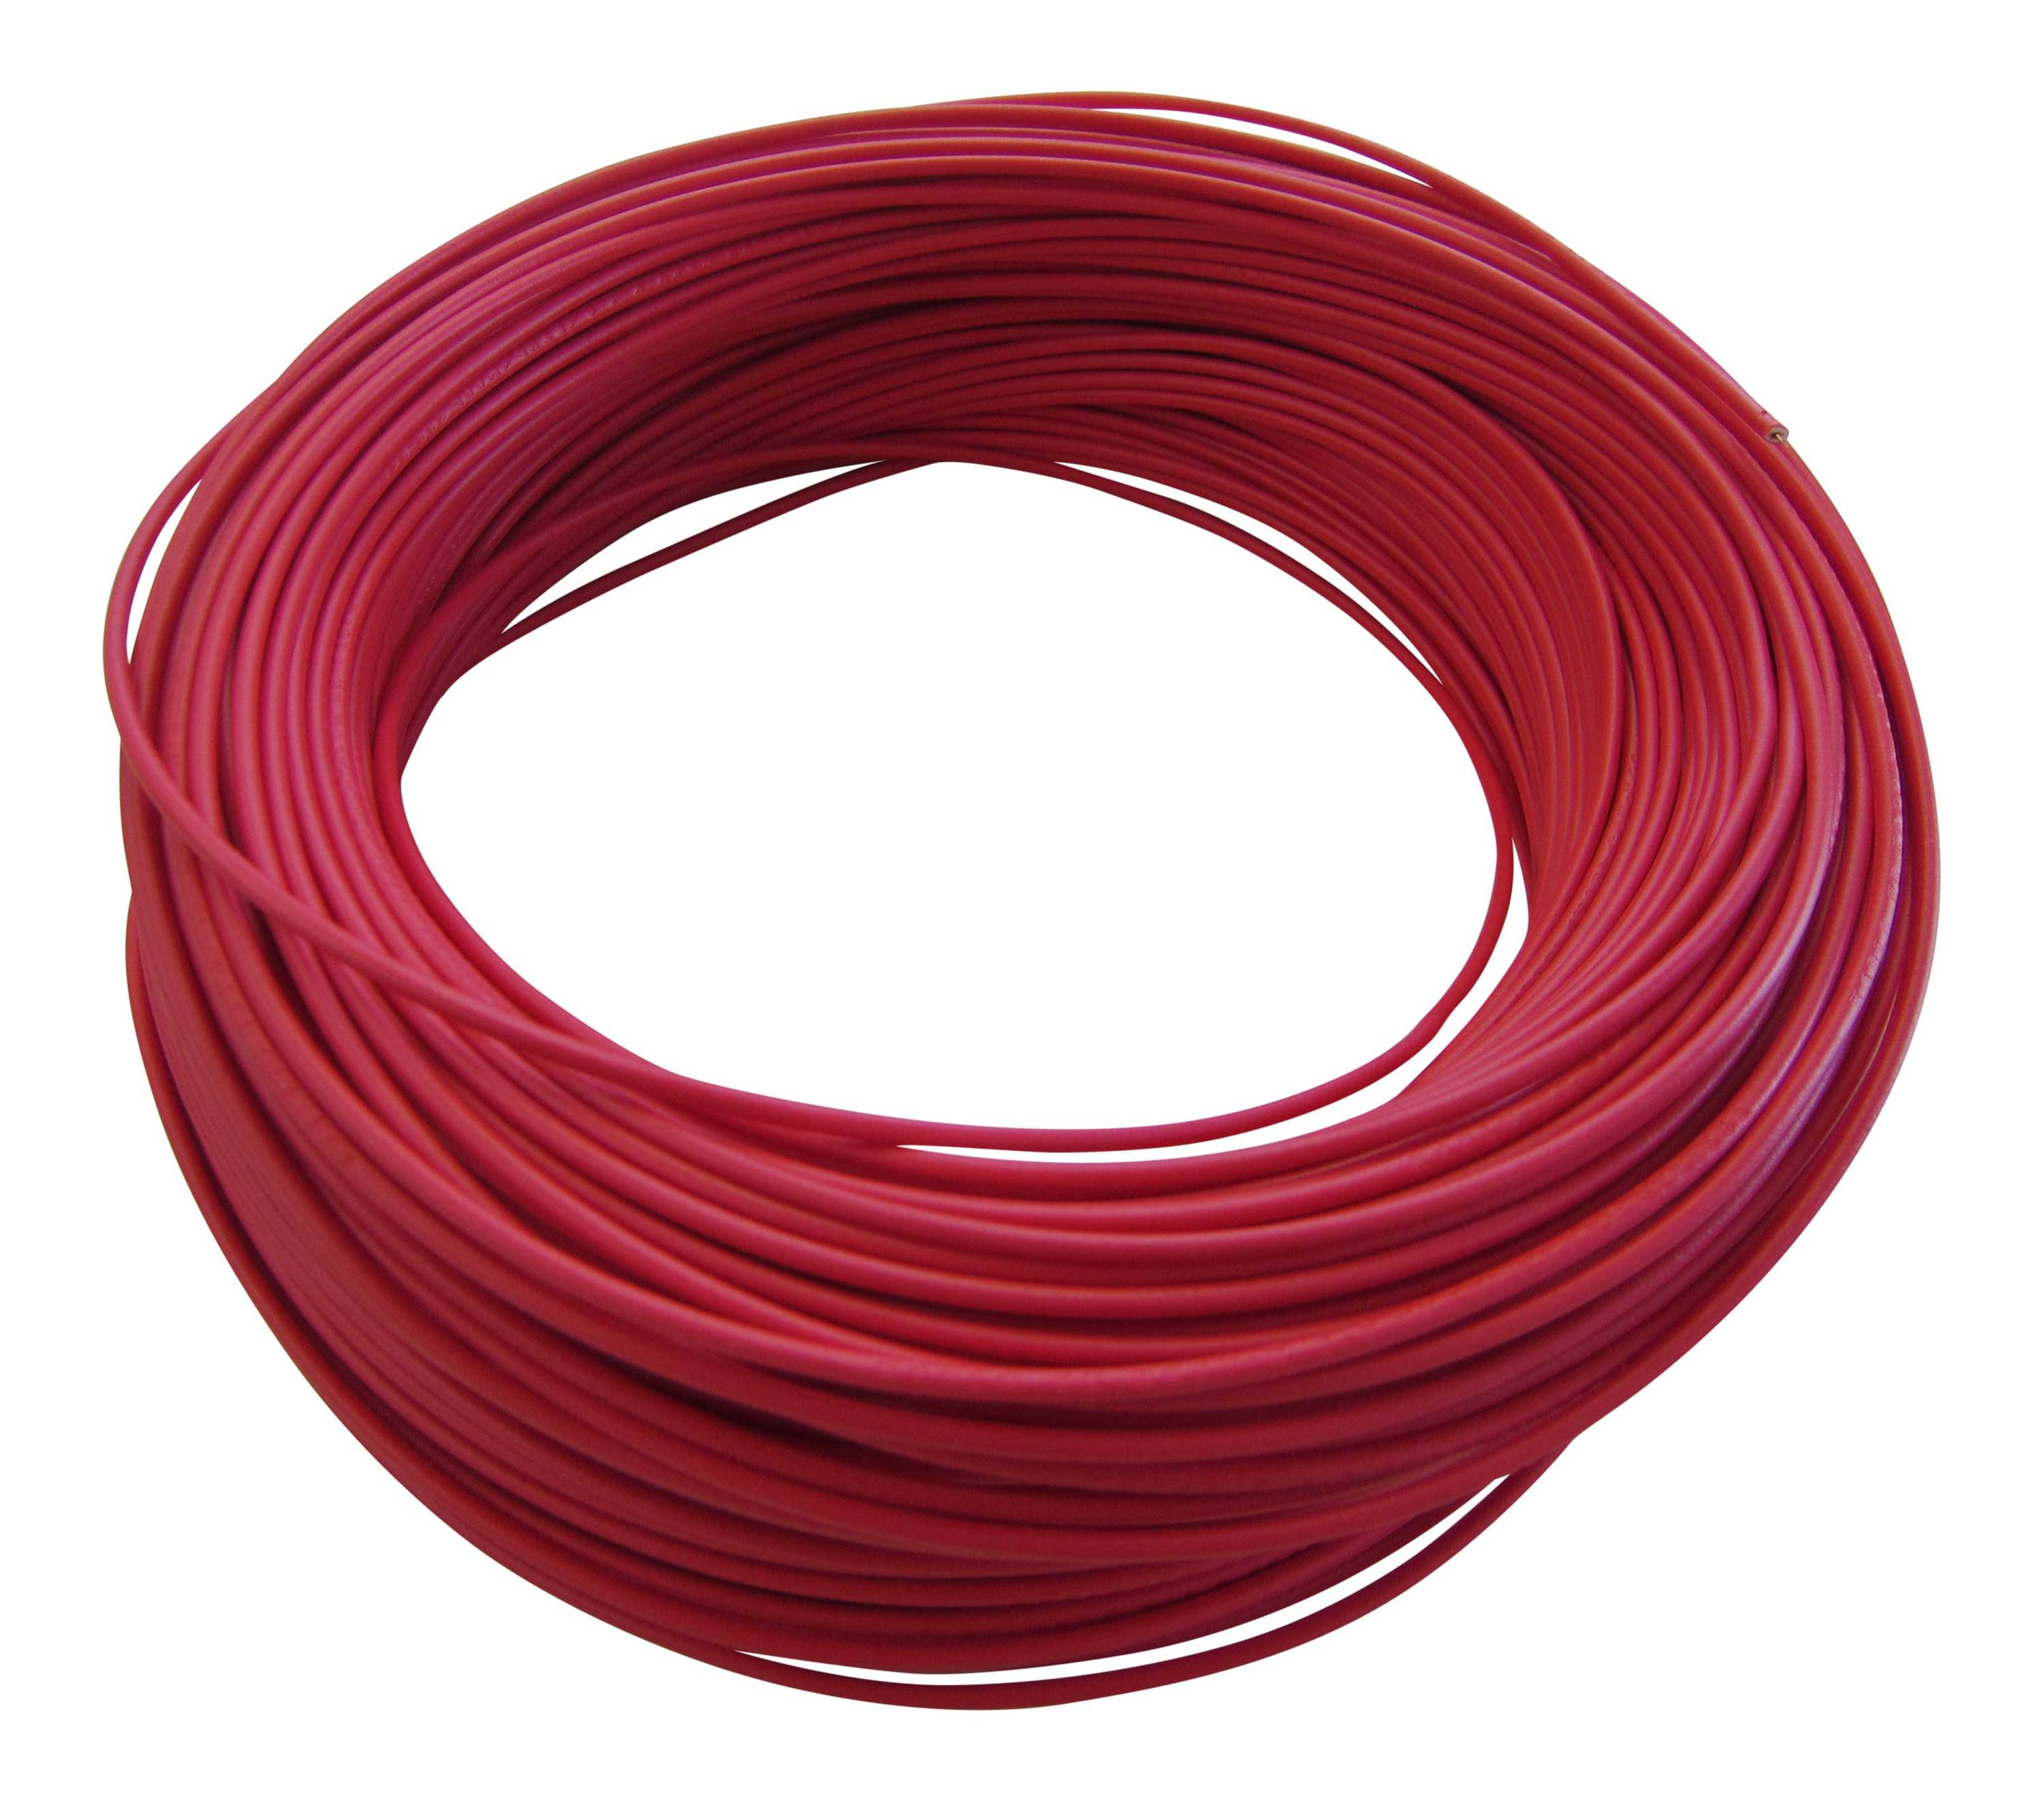 0,29¤/m KFZ LKW Kabel Litze Leitung Flexible FLRy 0,5mm² 20m Rot / M. in Germany